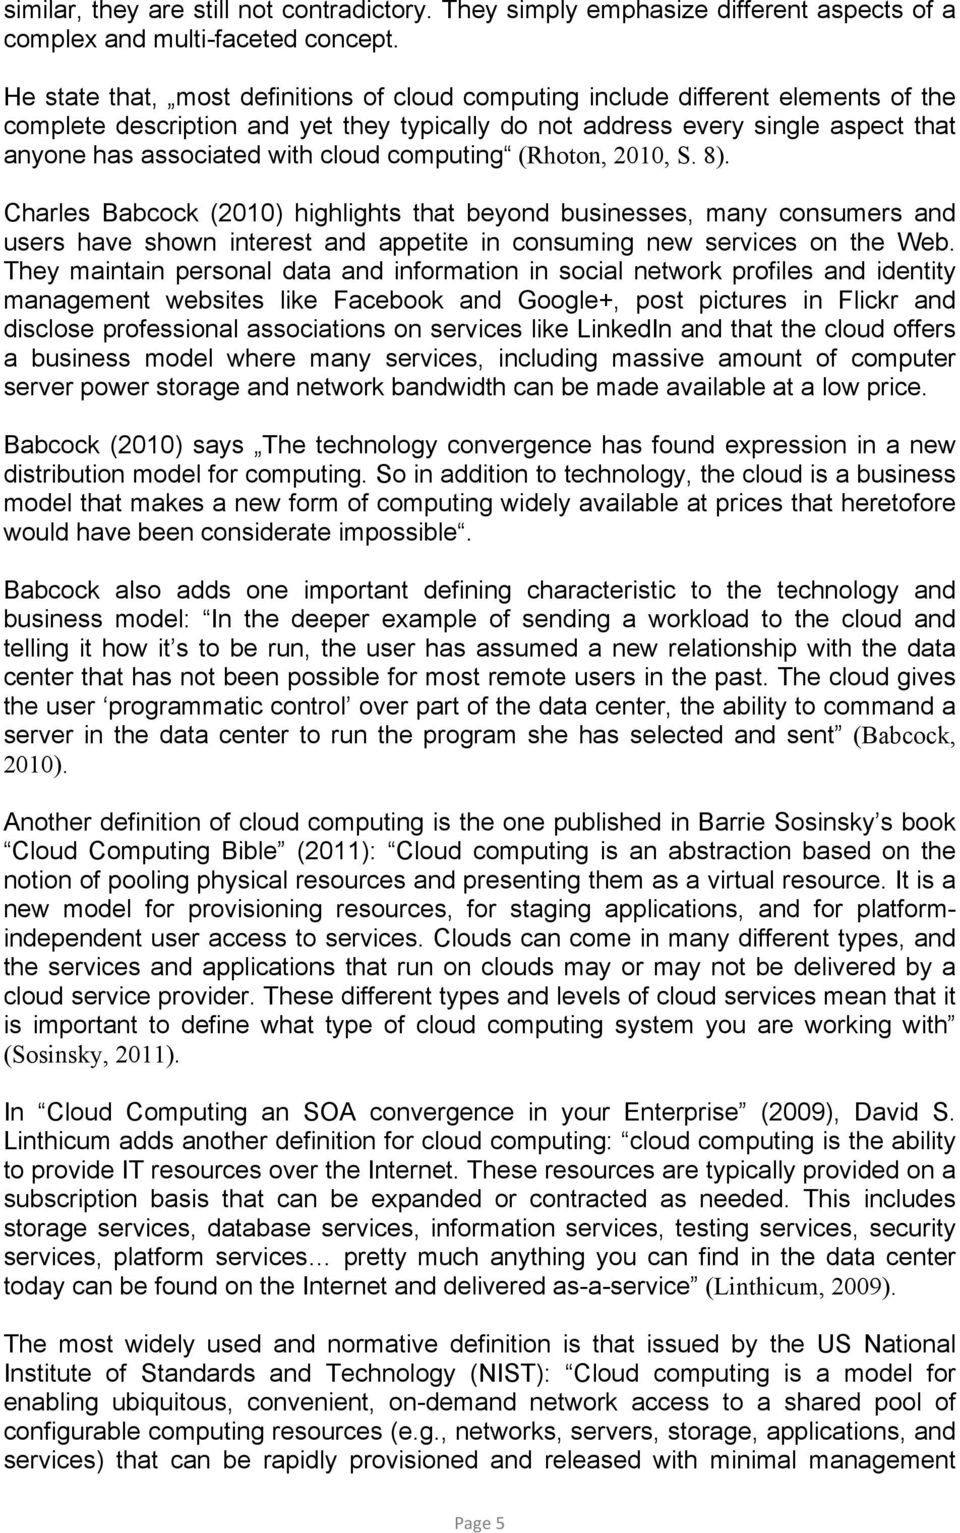 cloud computing (Rhoton, 2010, S. 8). Charles Babcock (2010) highlights that beyond businesses, many consumers and users have shown interest and appetite in consuming new services on the Web.